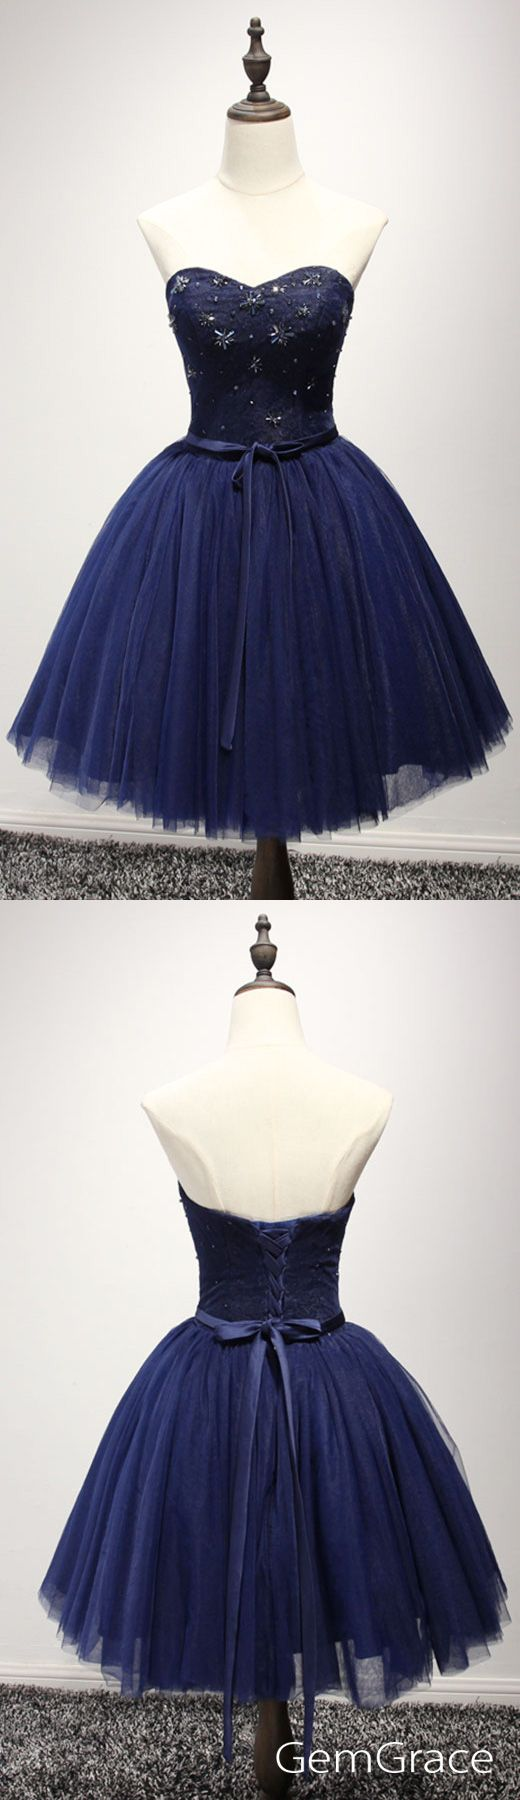 best kleider images on pinterest homecoming dresses beautiful